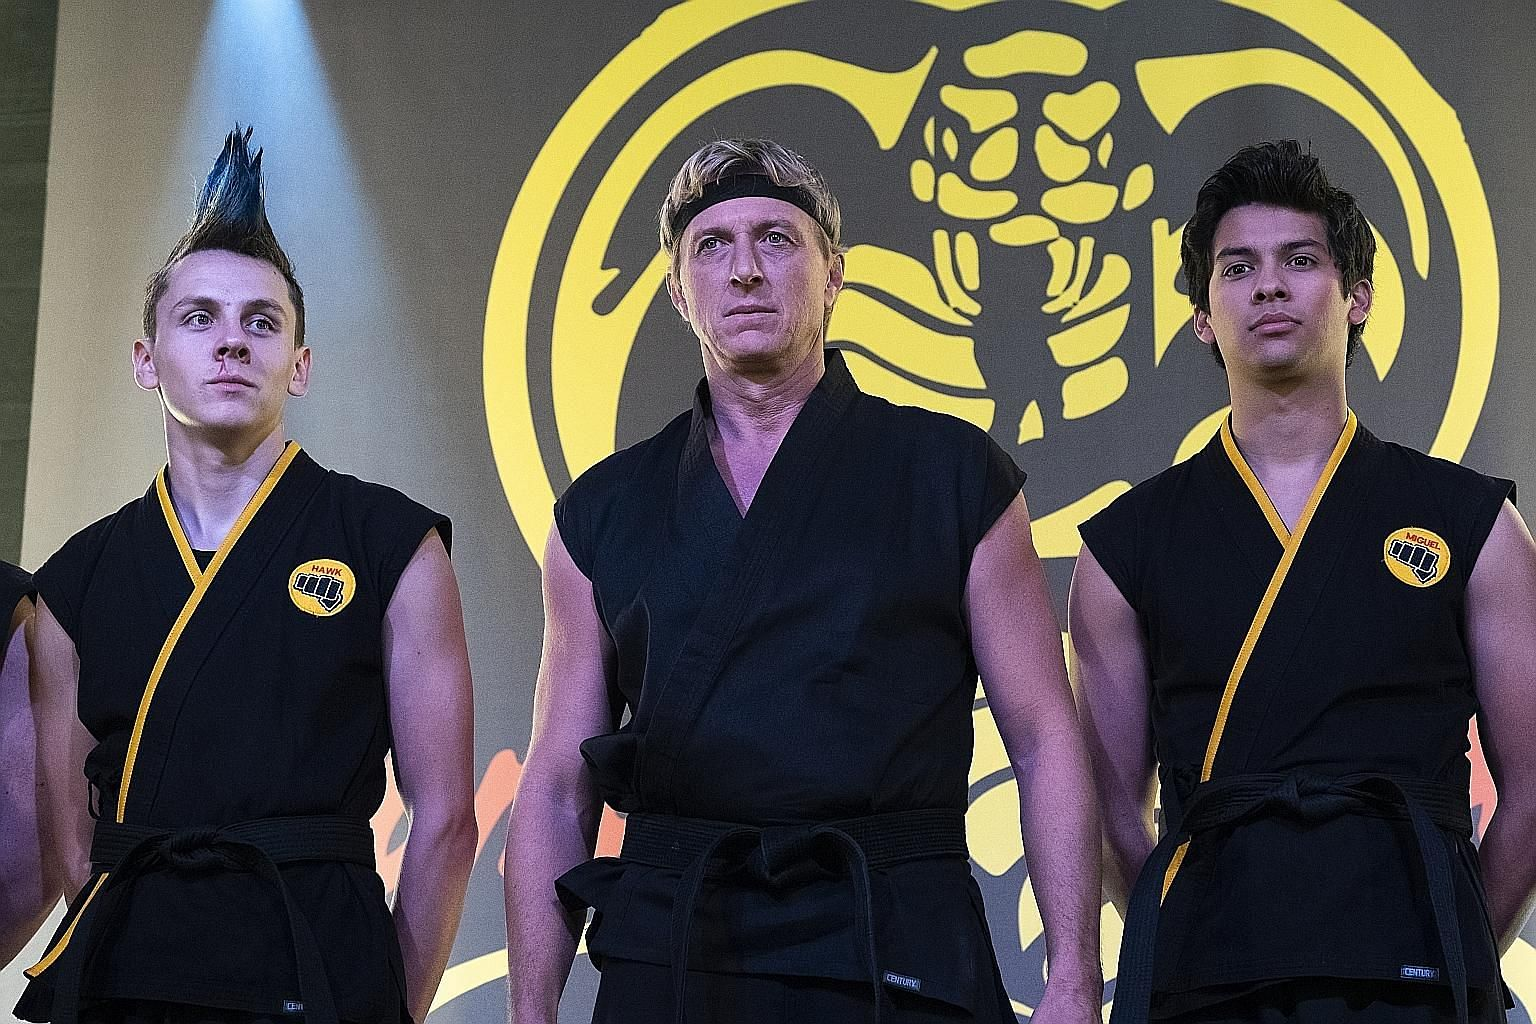 Documentary The Speed Cubers follows the two best Rubik's Cube speedcubers in the world - Feliks Zemdegs (far left) and Max Park (left). In Cobra Kai, William Zabka (centre) reprises his role as Johnny Lawrence, who teaches a new generation of karate